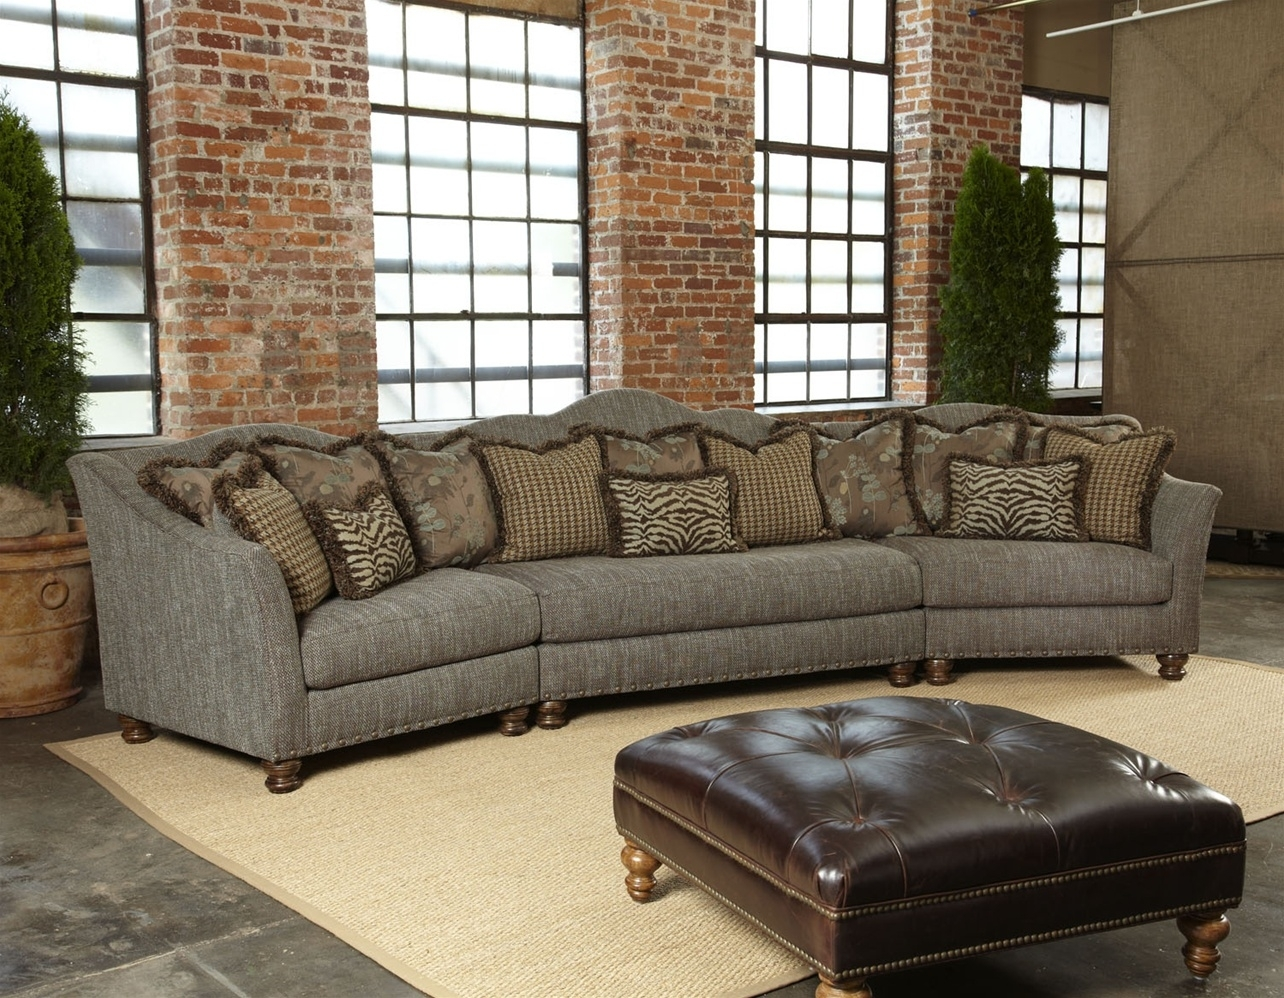 High End Sectional Sofas – Cleanupflorida With Regard To High End Leather Sectional Sofas (Image 3 of 10)